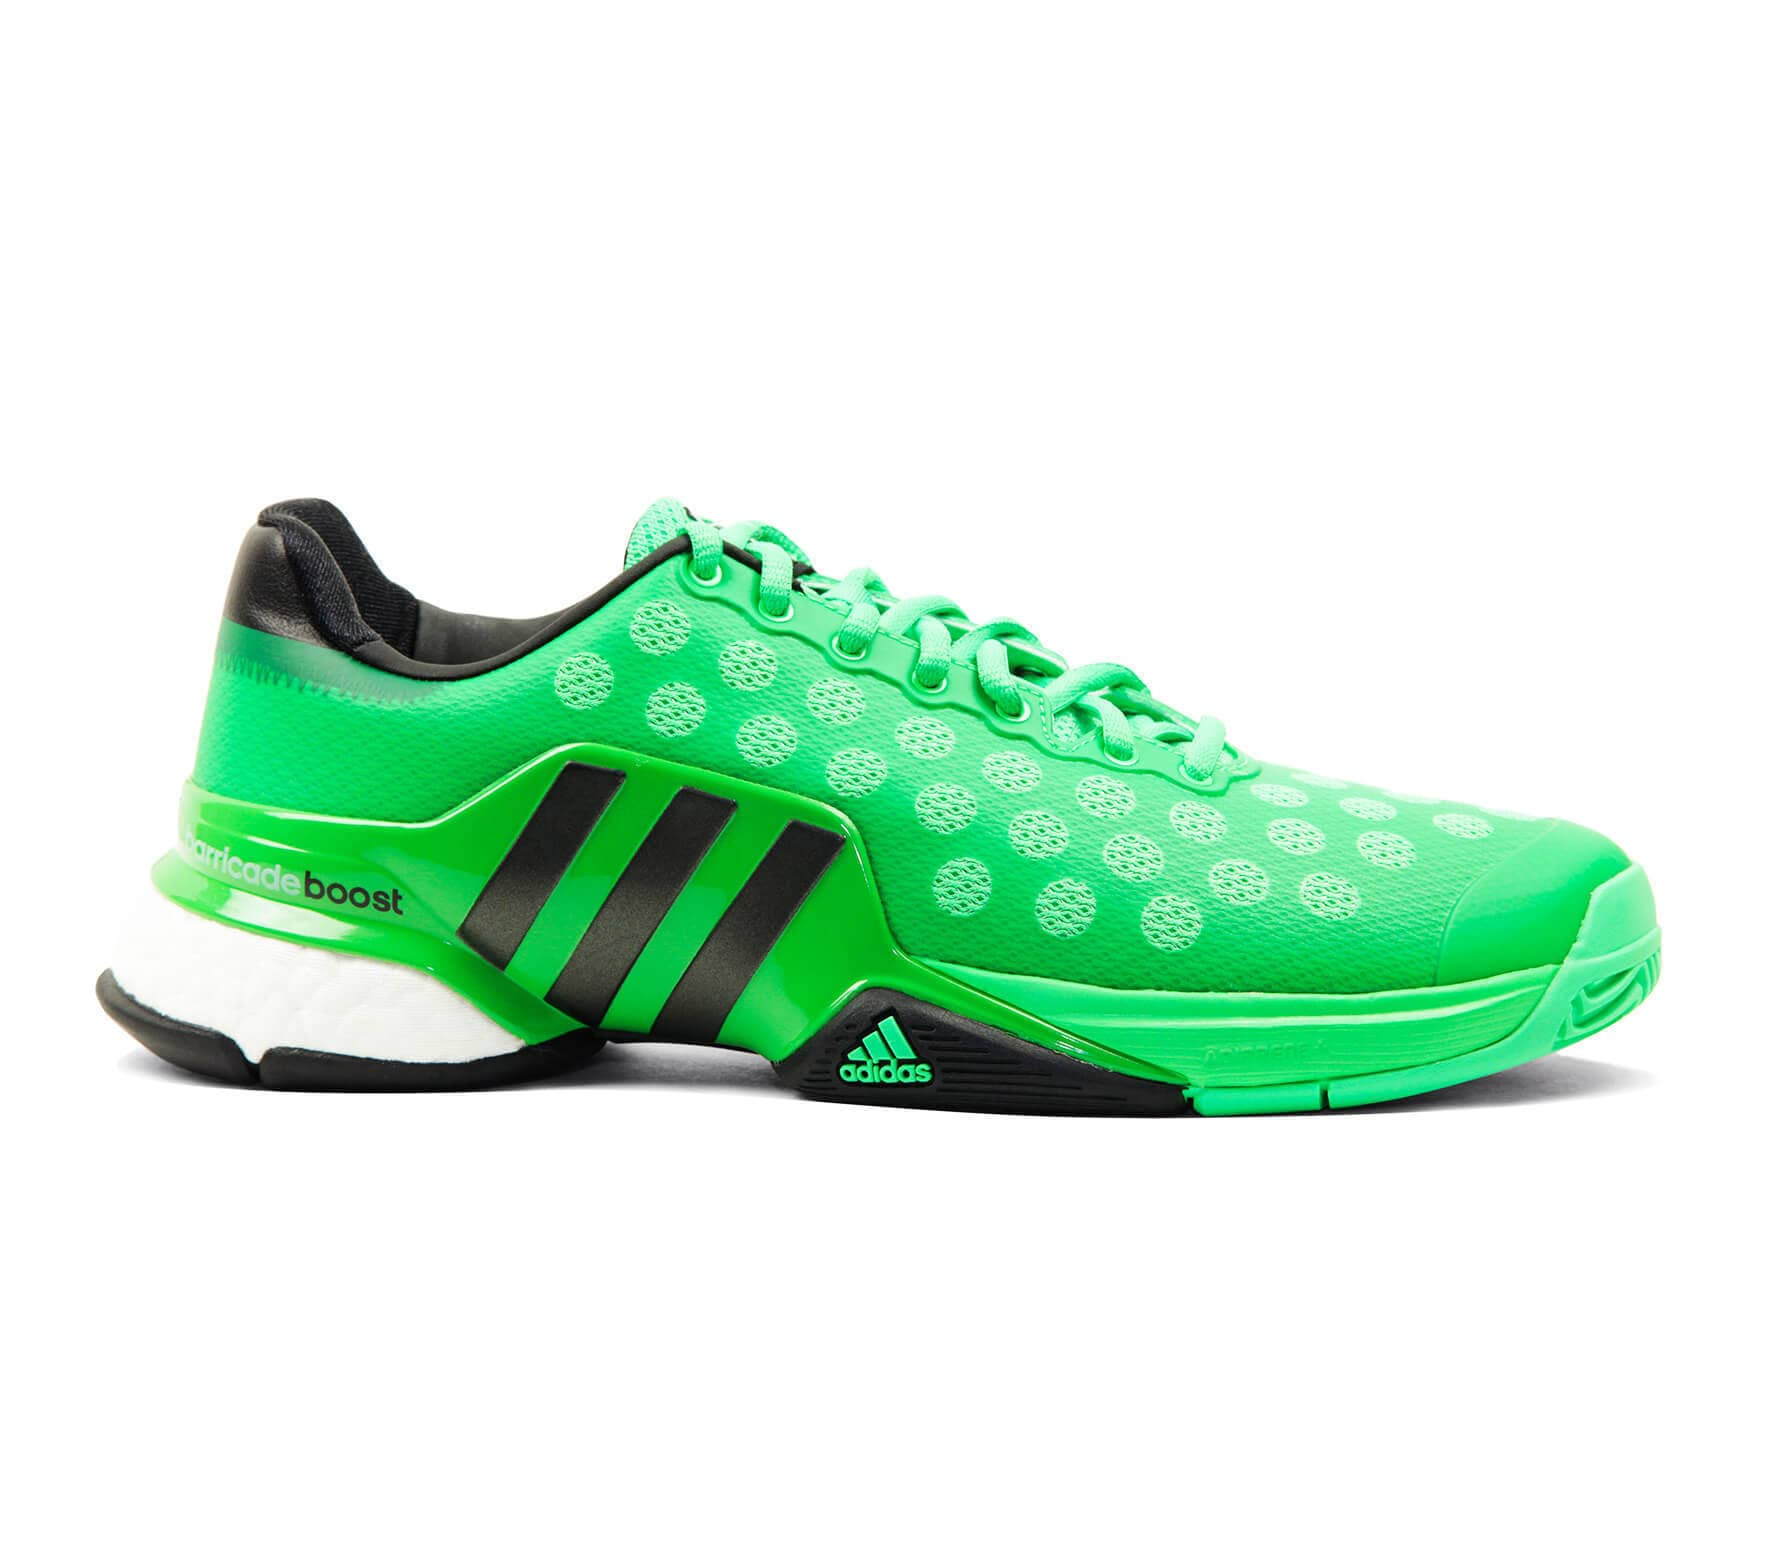 a0bf0e402 Adidas - Barricade 2015 Boost men s tennis shoes (green) - buy it at ...